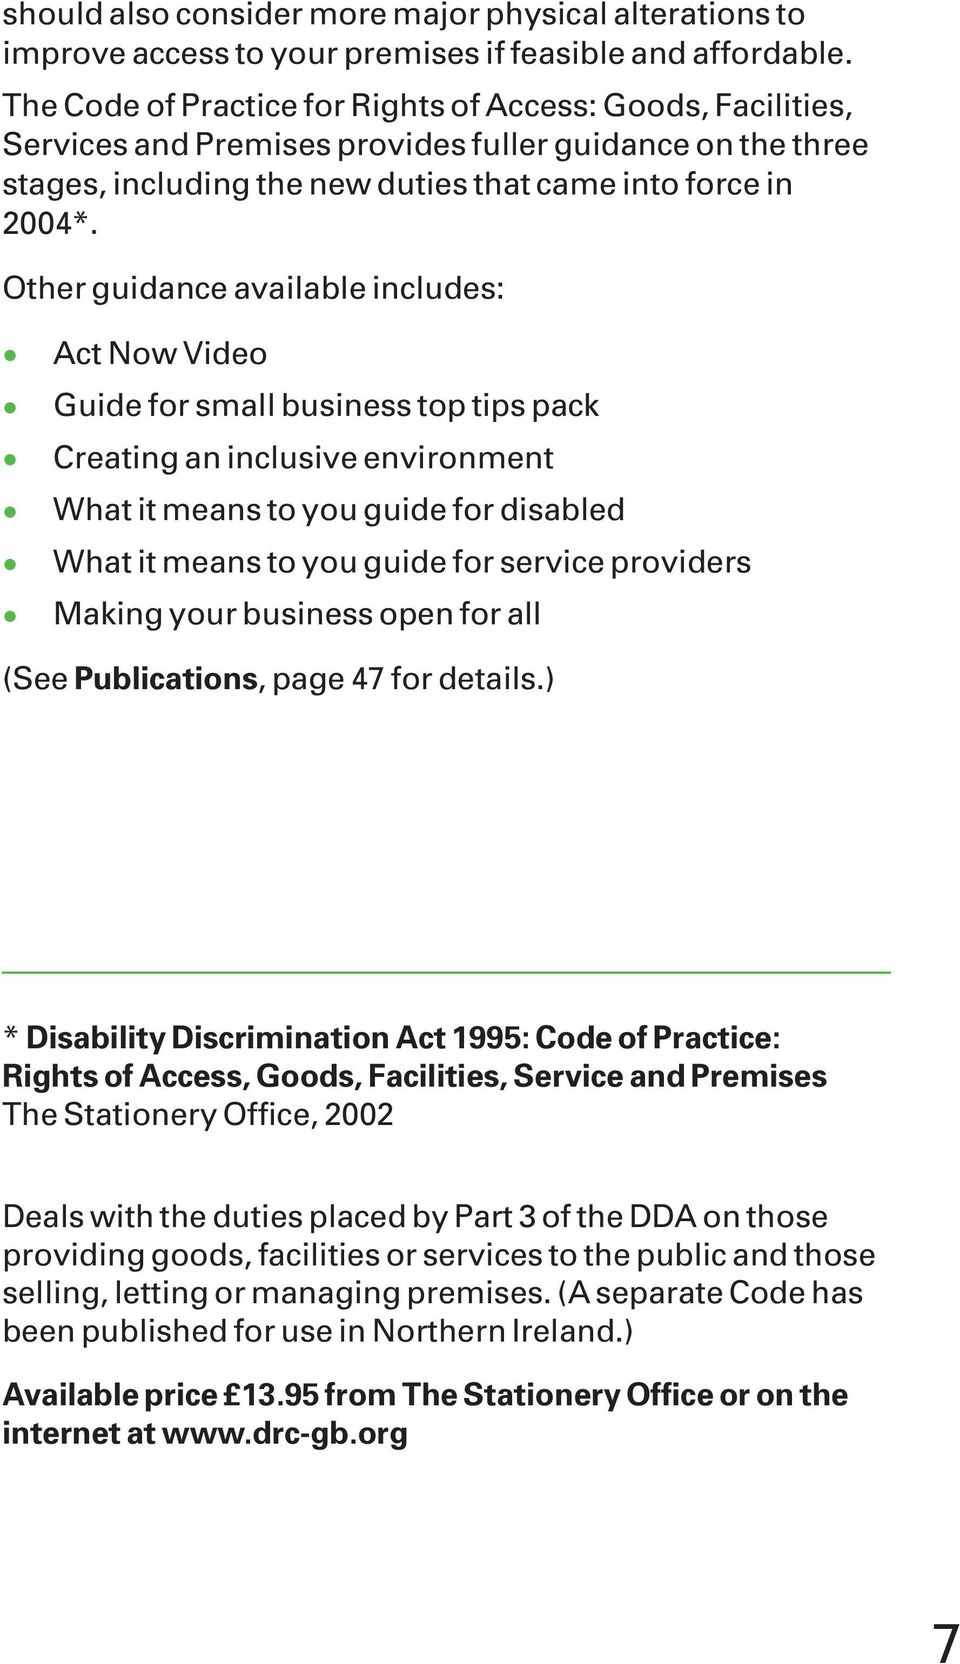 Other guidance available includes: Act Now Video Guide for small business top tips pack Creating an inclusive environment What it means to you guide for disabled What it means to you guide for